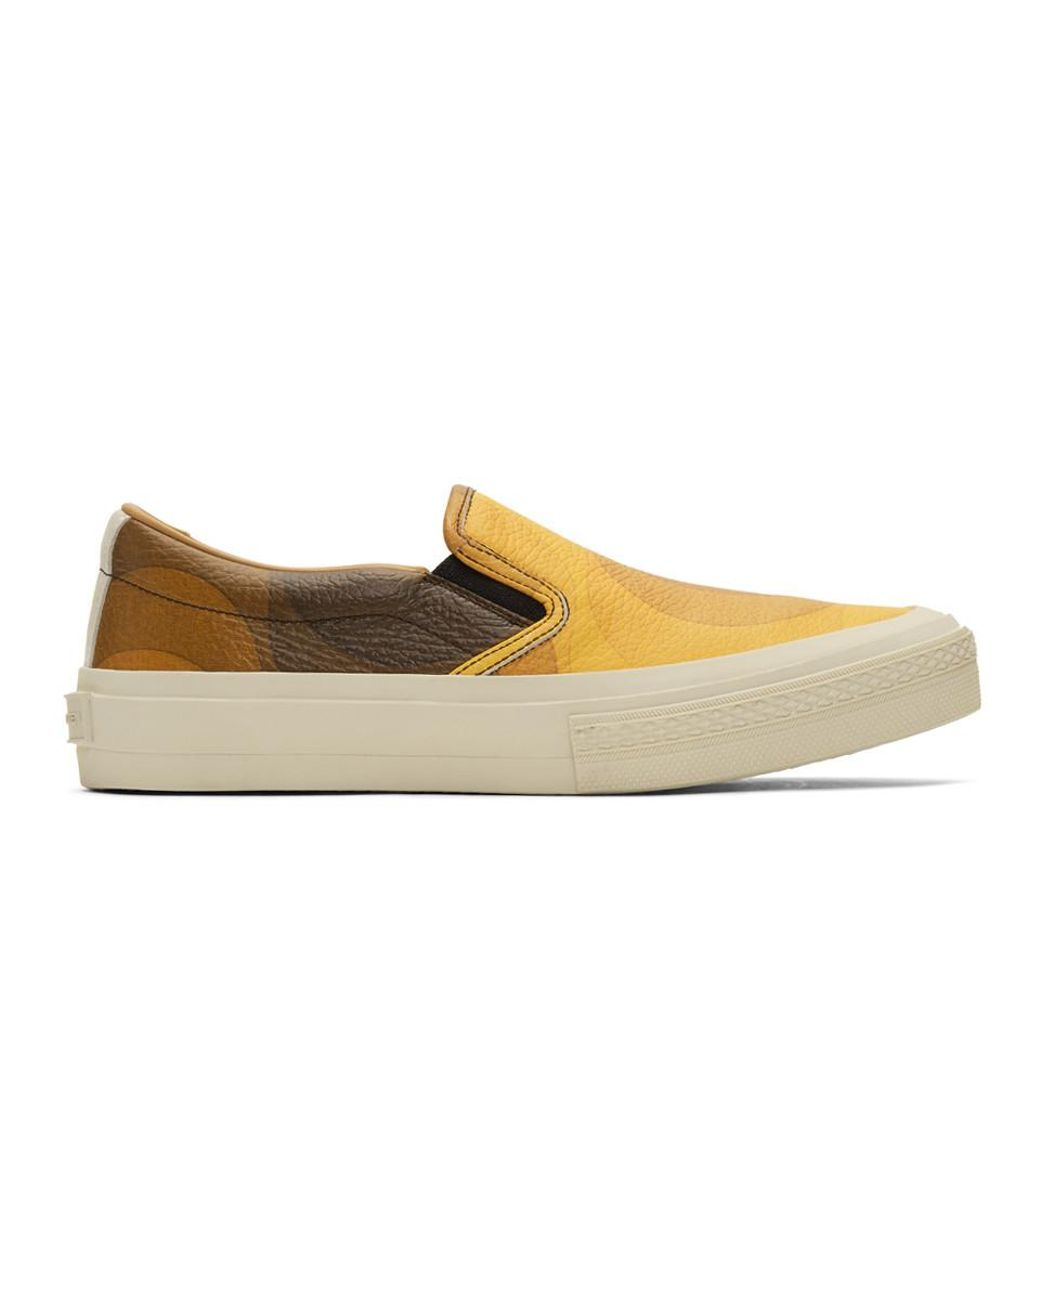 c5b4d1e57a97e3 Dries Van Noten. Men s Yellow And Brown Verner Panton Edition Leather  Sneakers